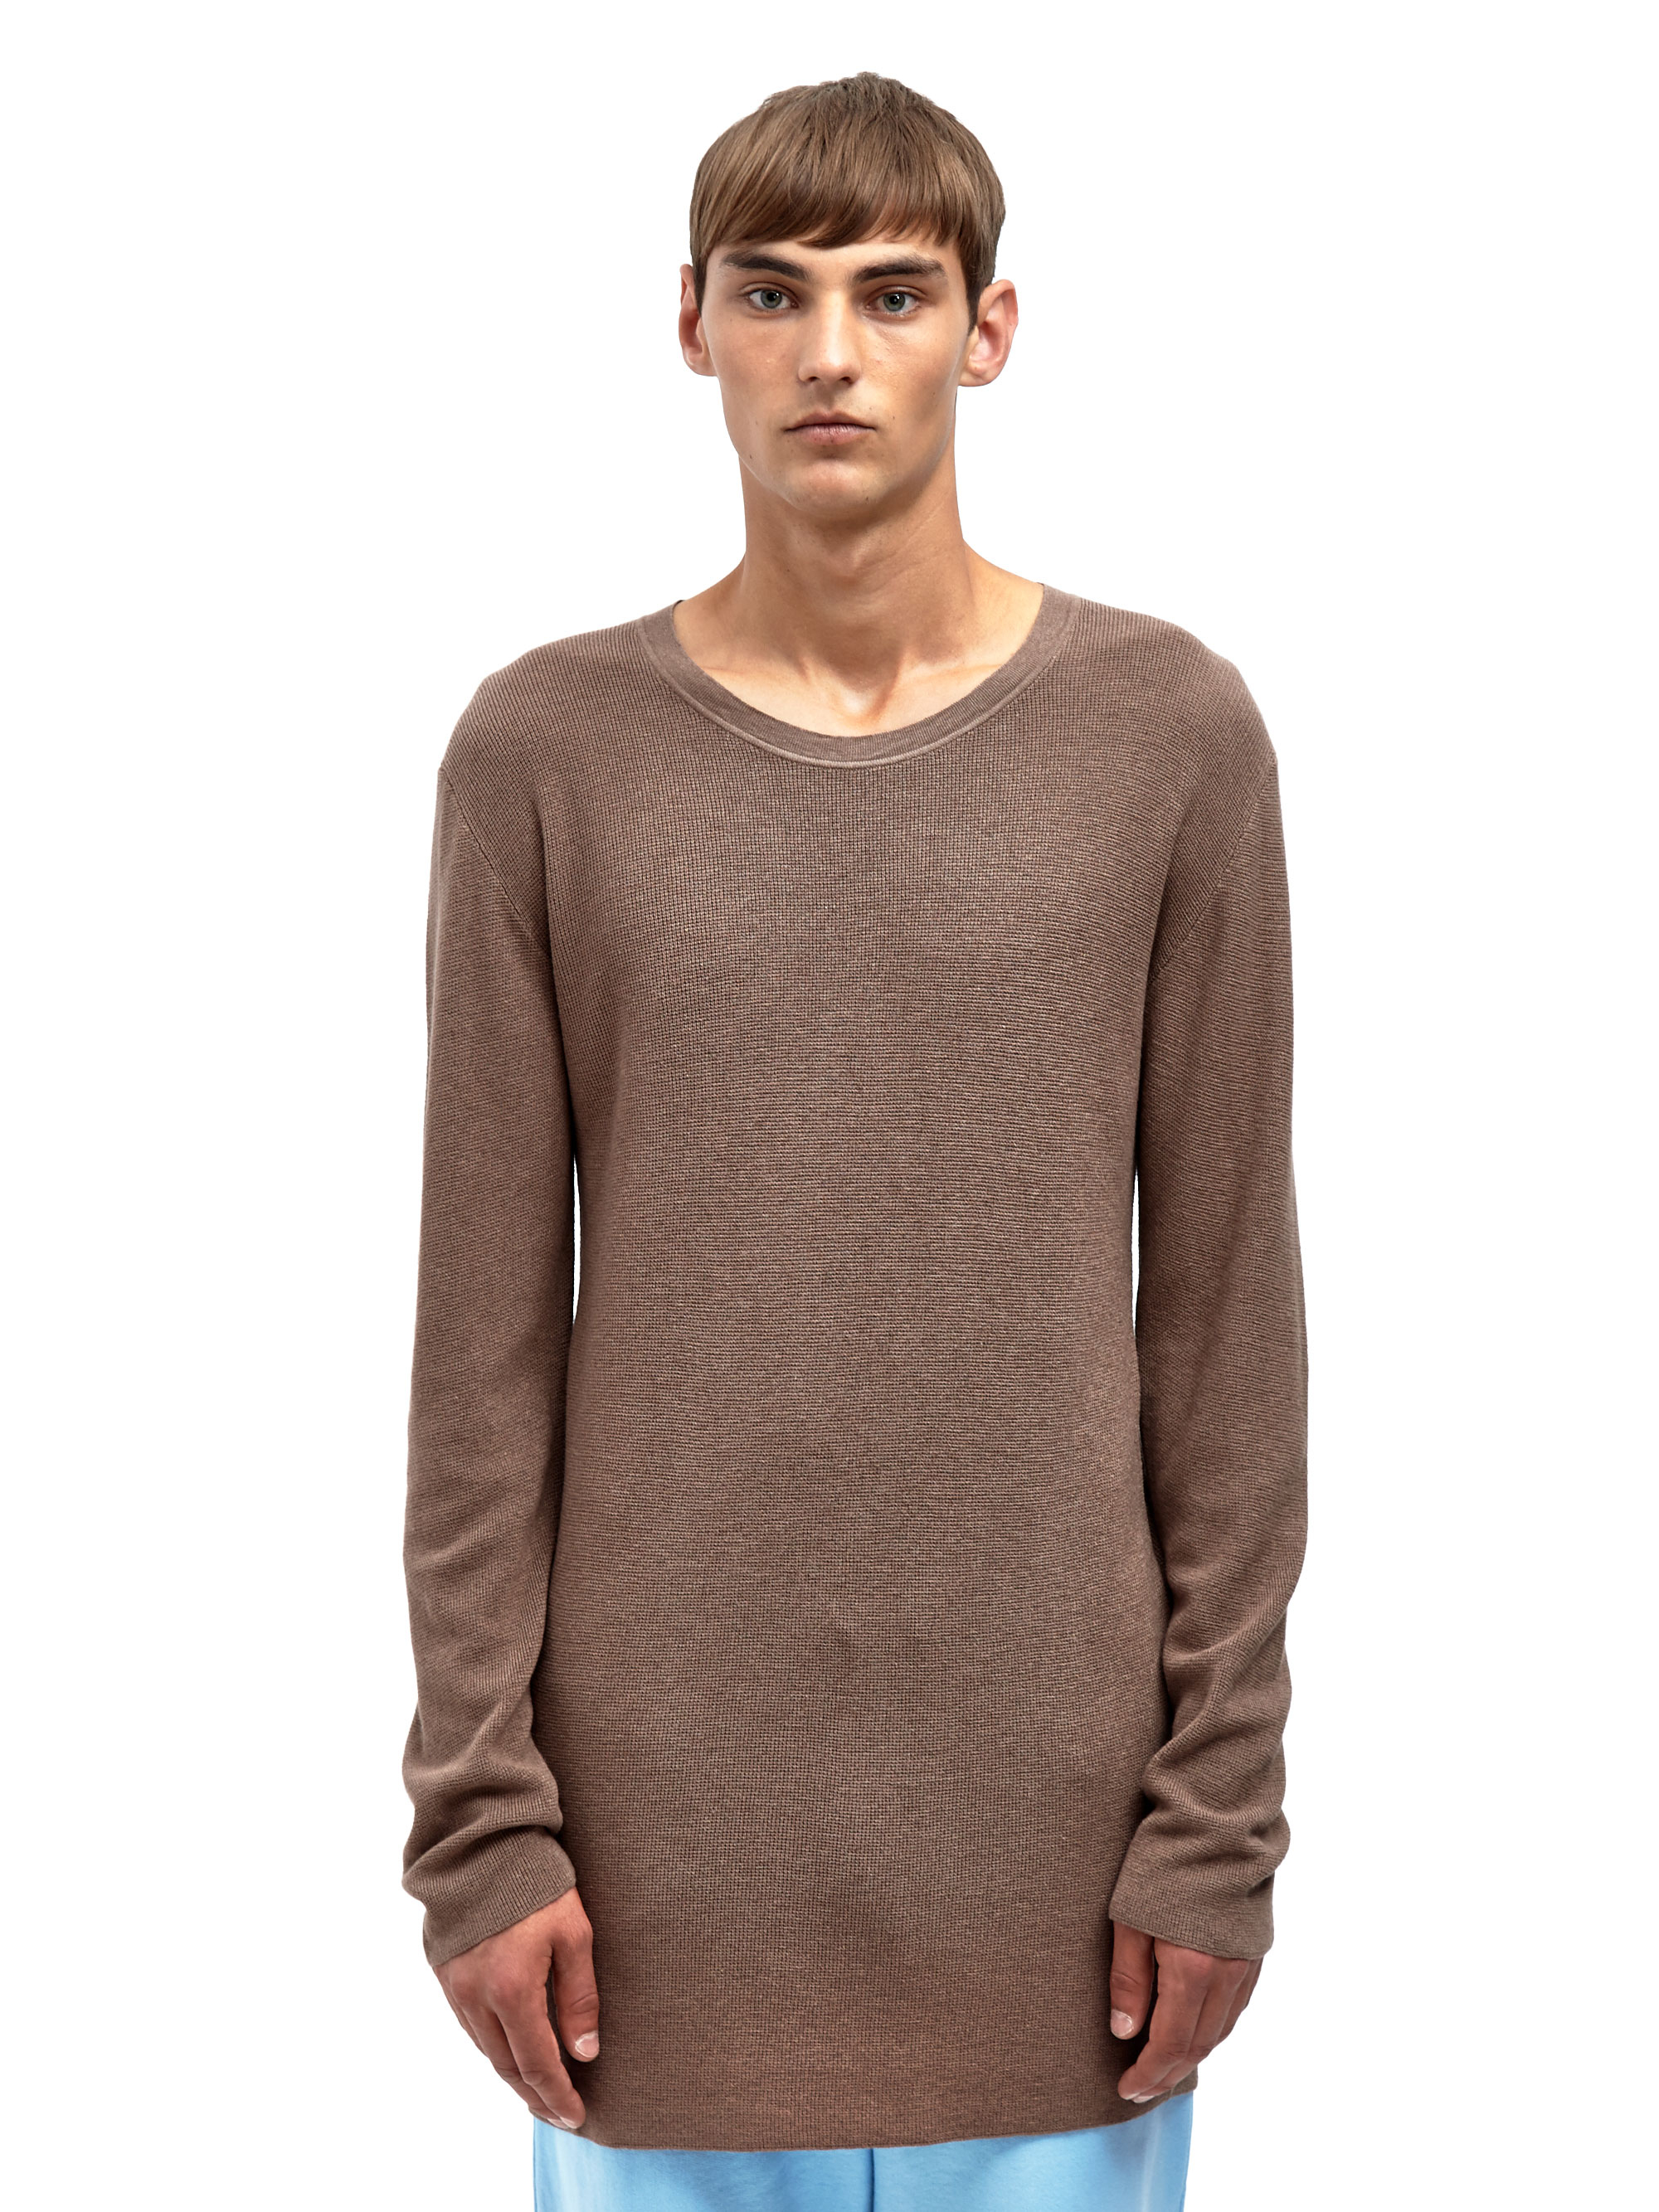 FREE Shipping & FREE Returns on Men's Designer Sweaters, Cashmere & Cardigans. Shop now! Pick Up in Store Available.